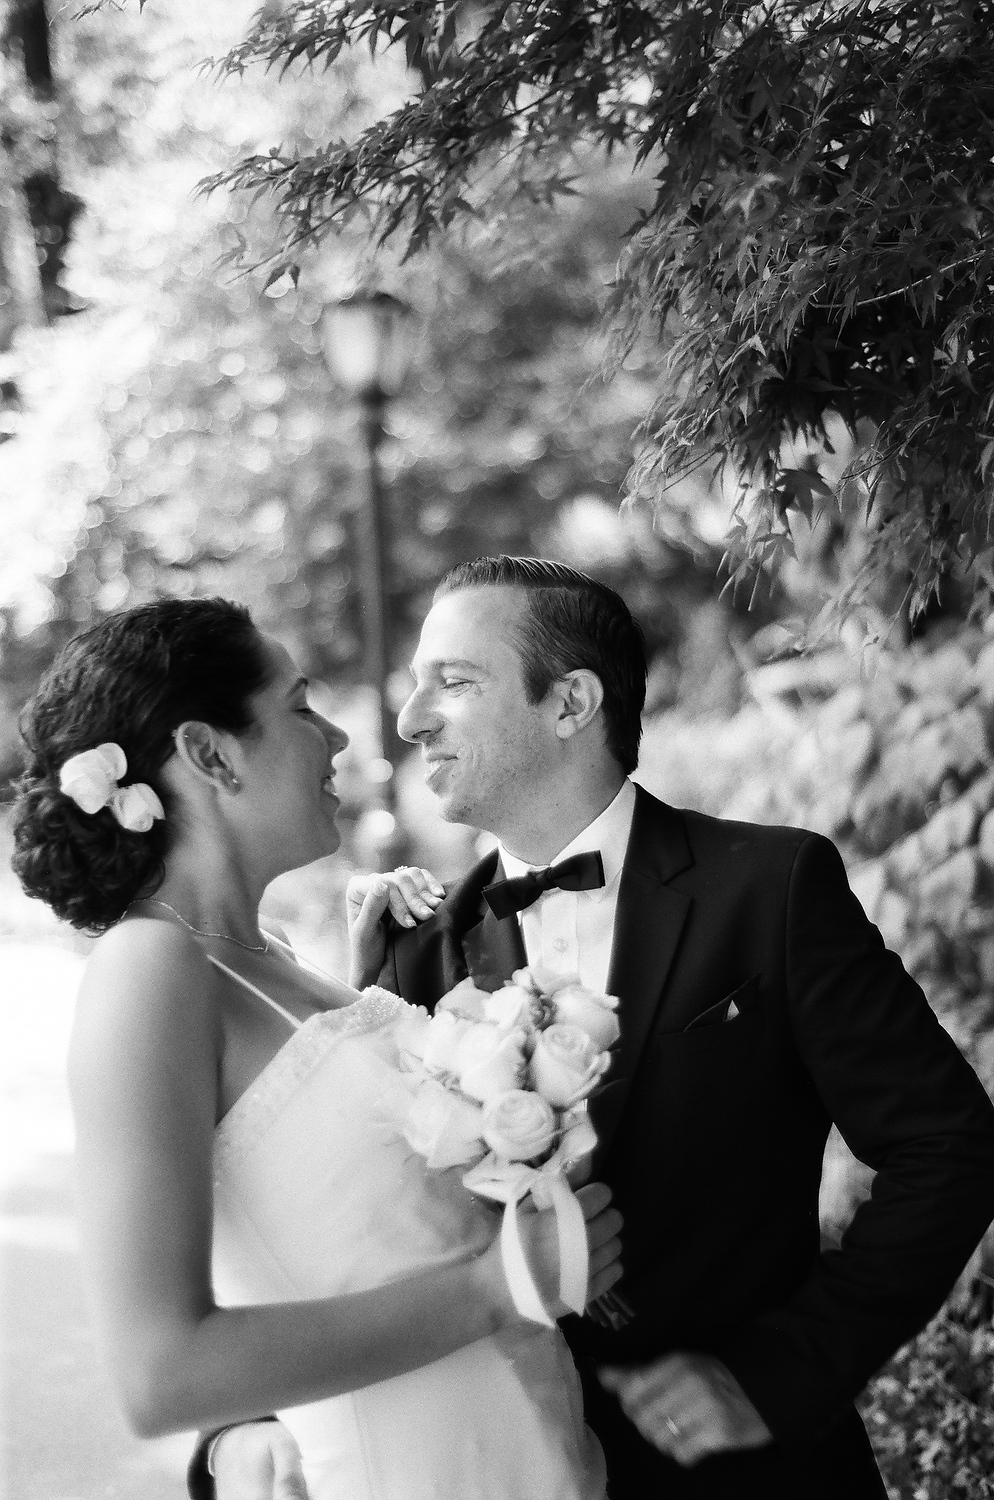 black and white film photo of bride and broom looking at each other in park